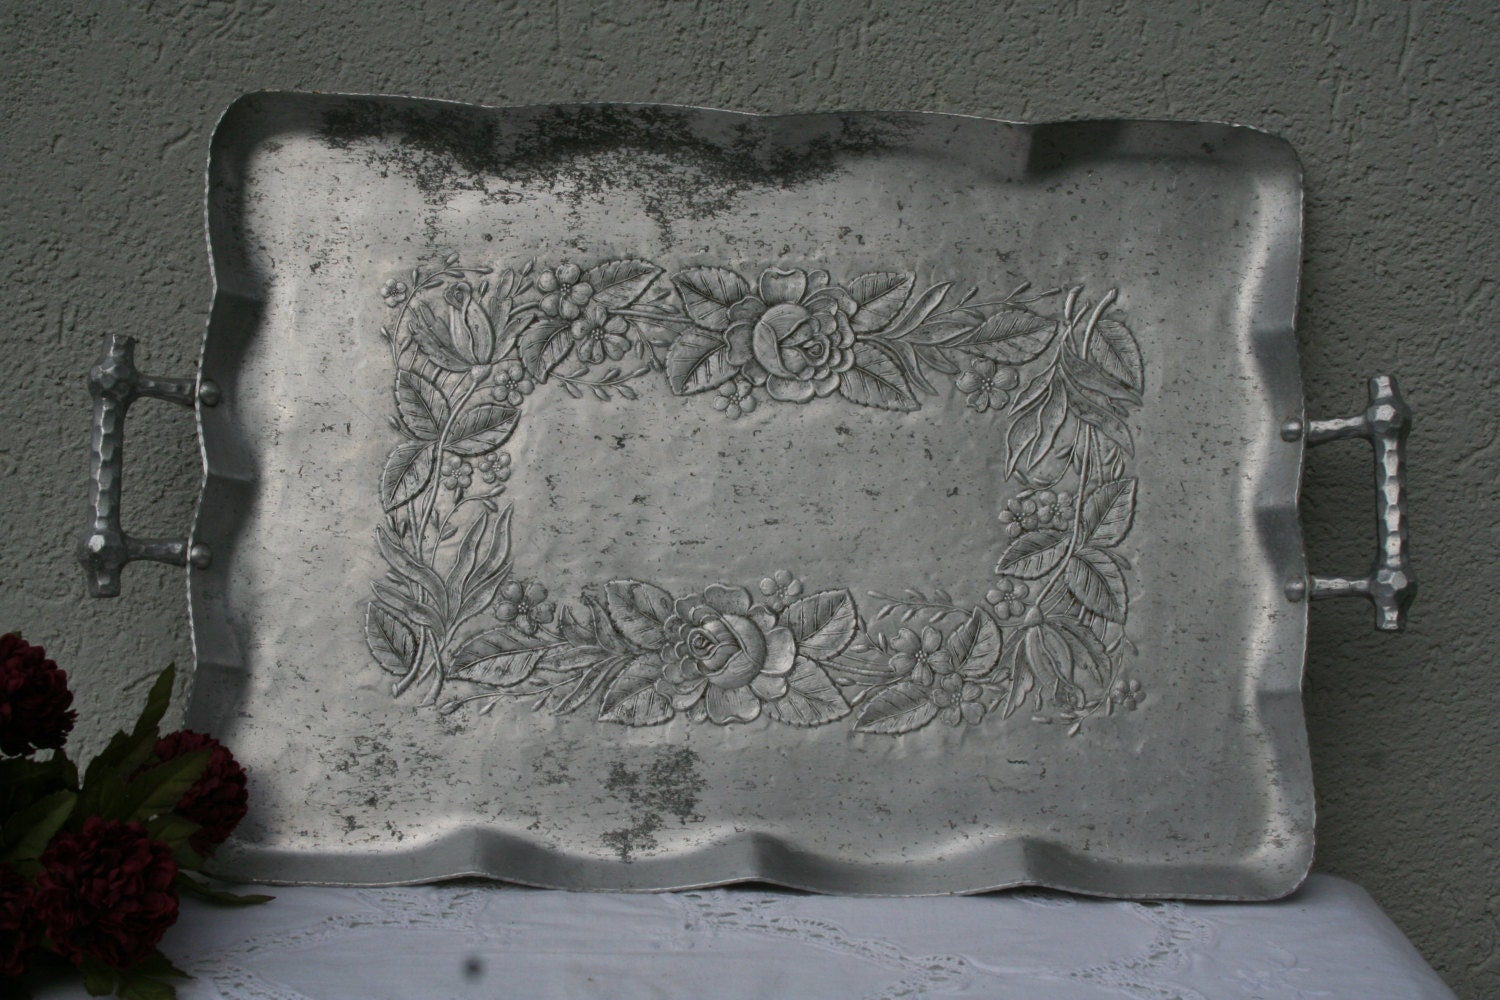 Vintage 8 sided hammered metal tray